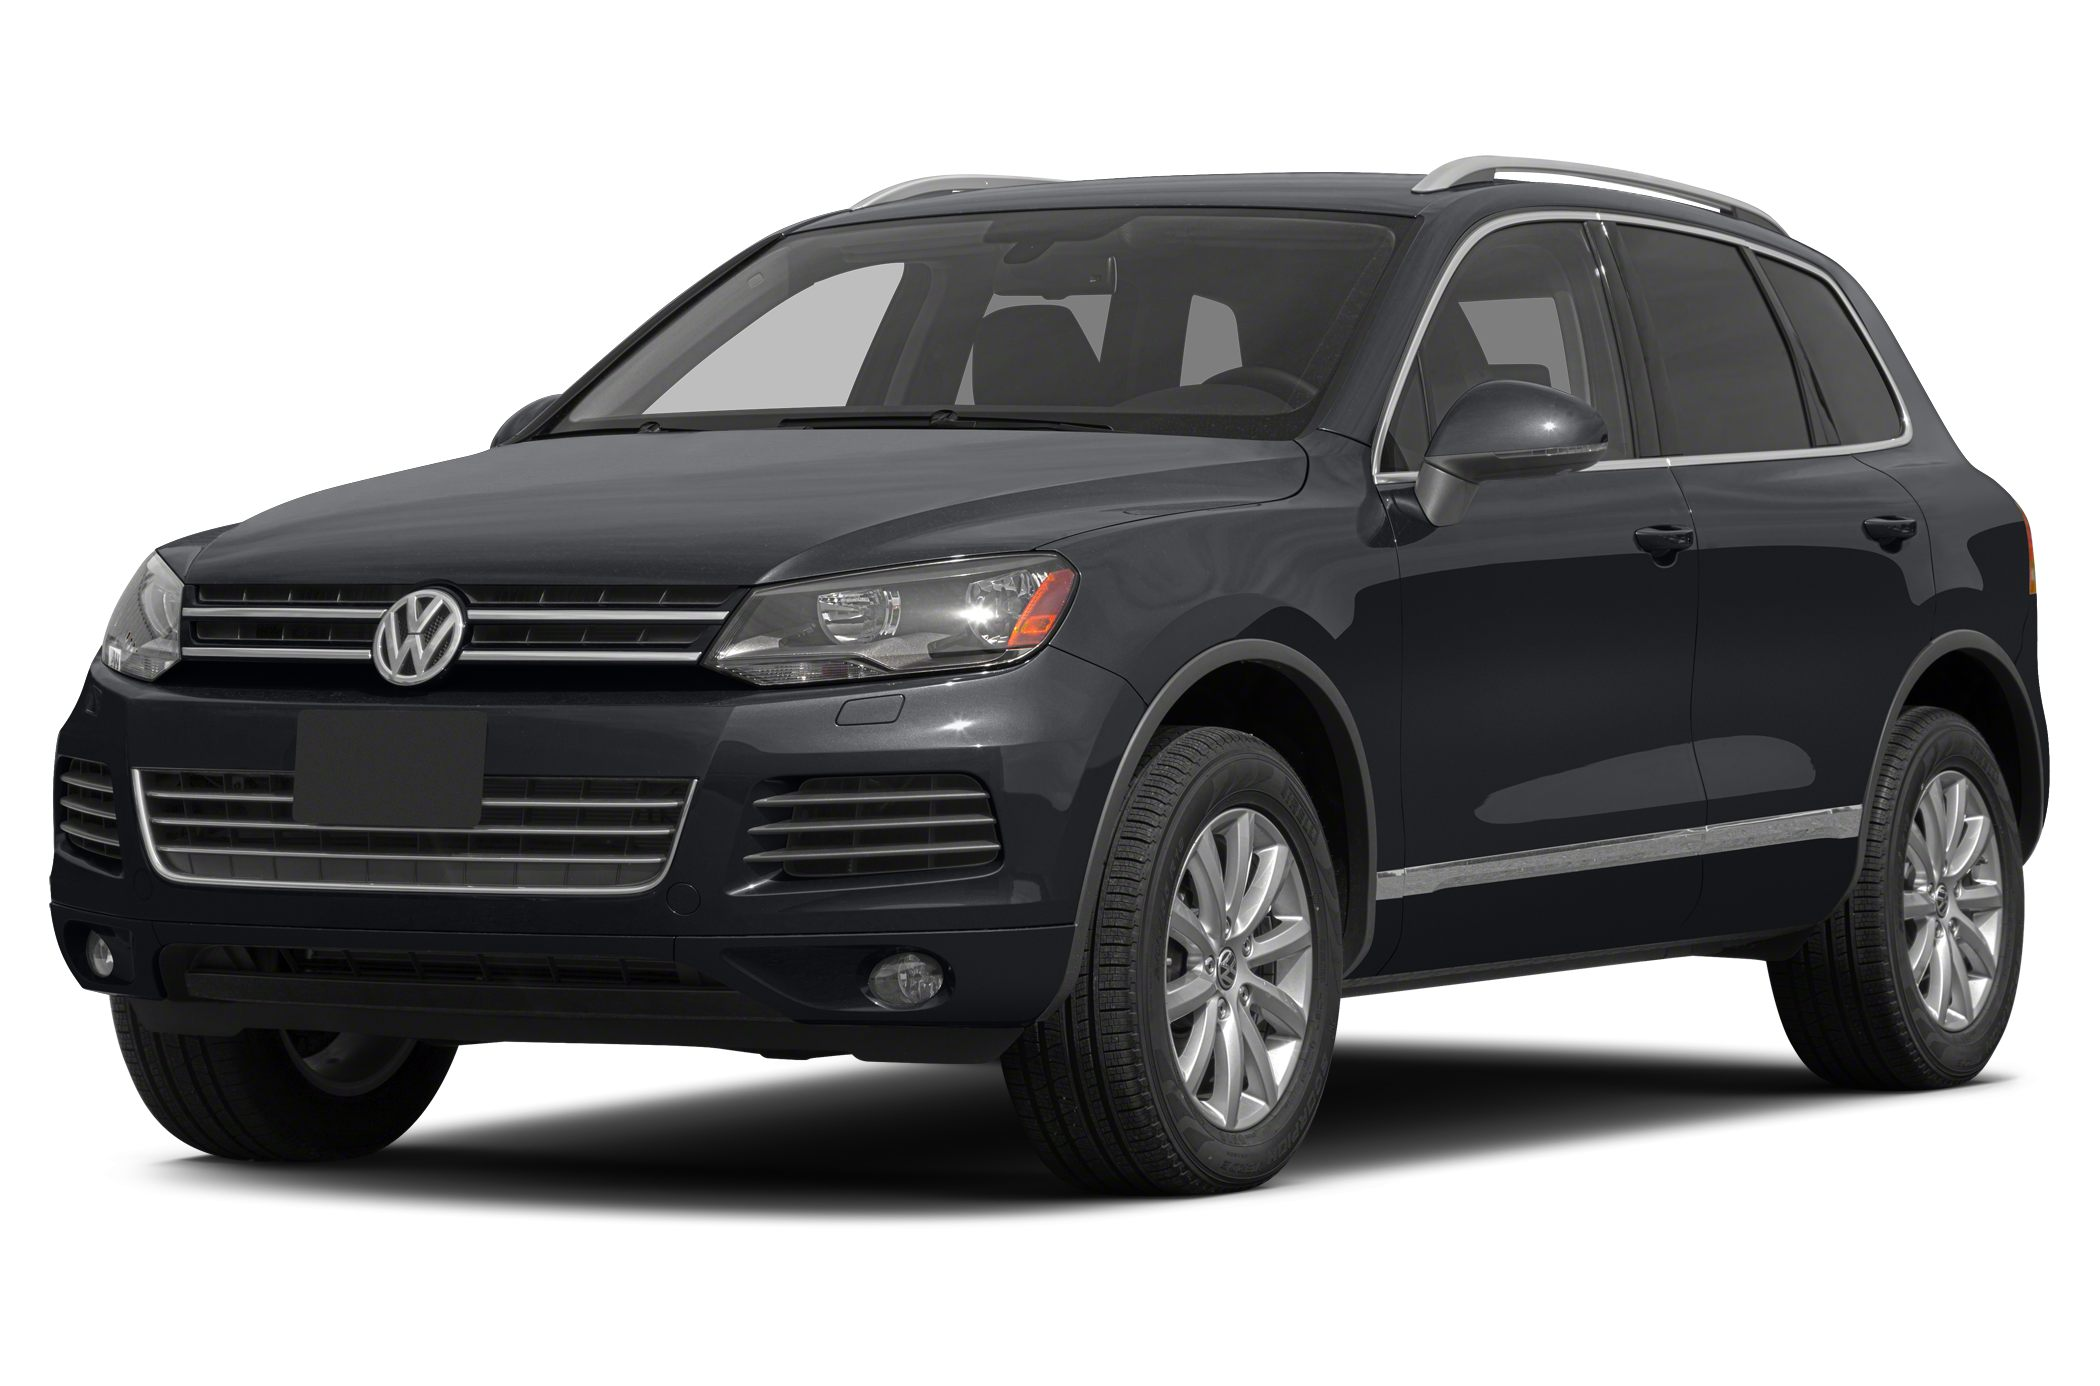 2014 Volkswagen Touareg Sport Come see this 2014 Volkswagen Touareg FSI It has a Automatic transm